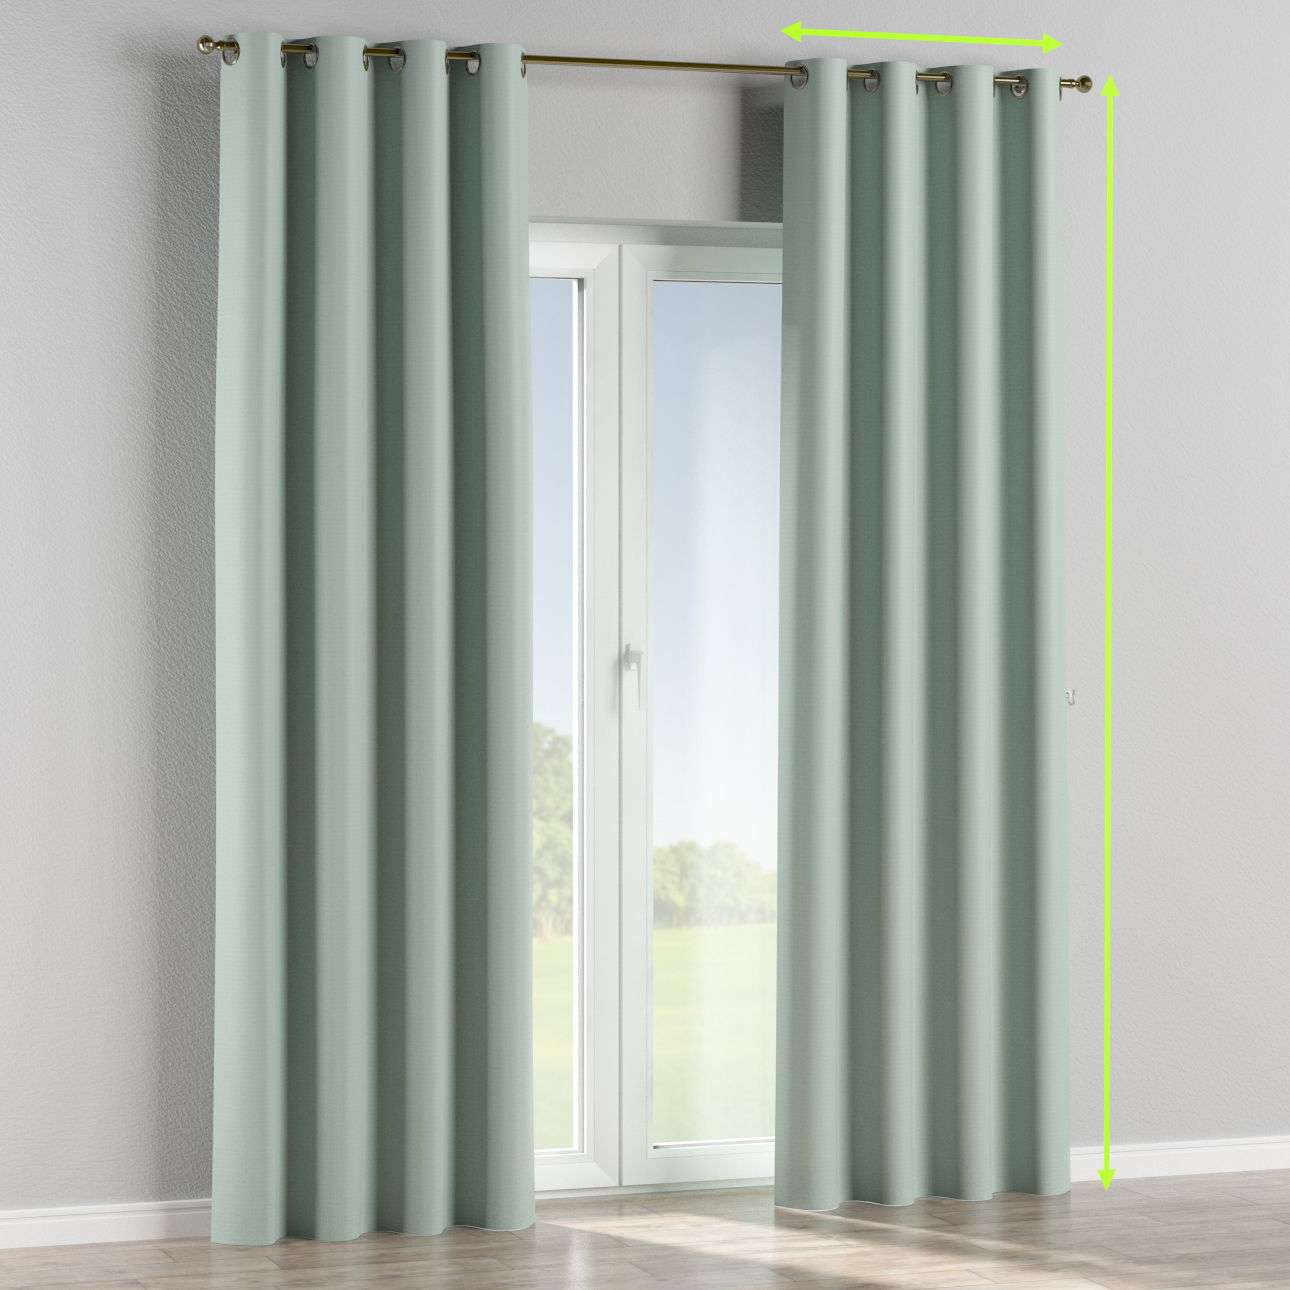 Blackout eyelet curtain in collection Blackout, fabric: 269-61